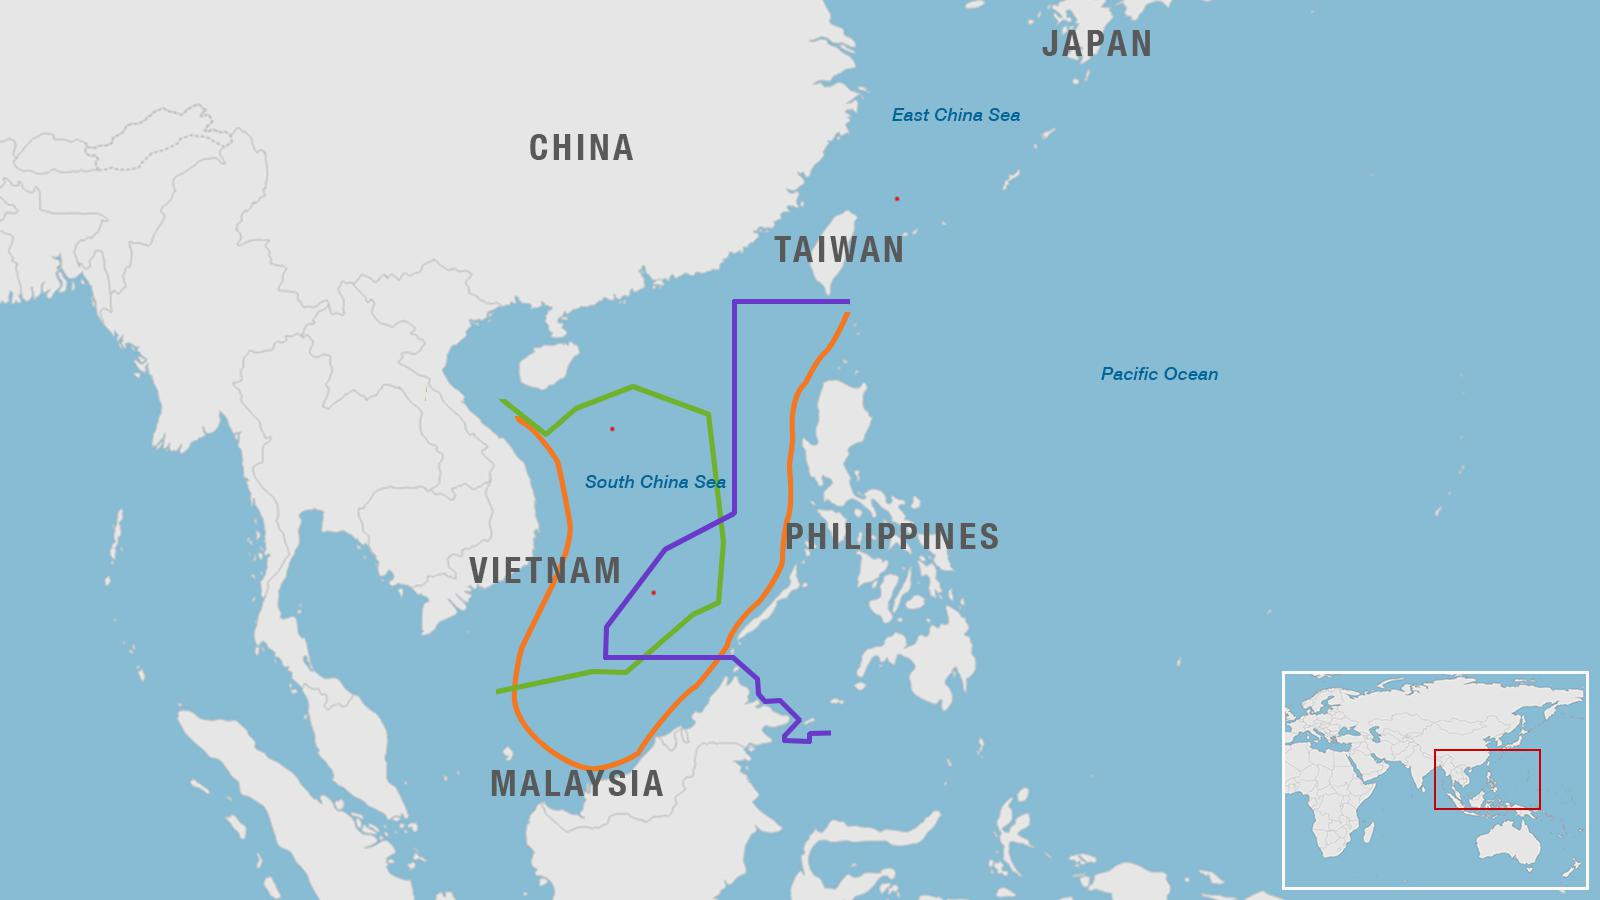 Map of South China Sea region